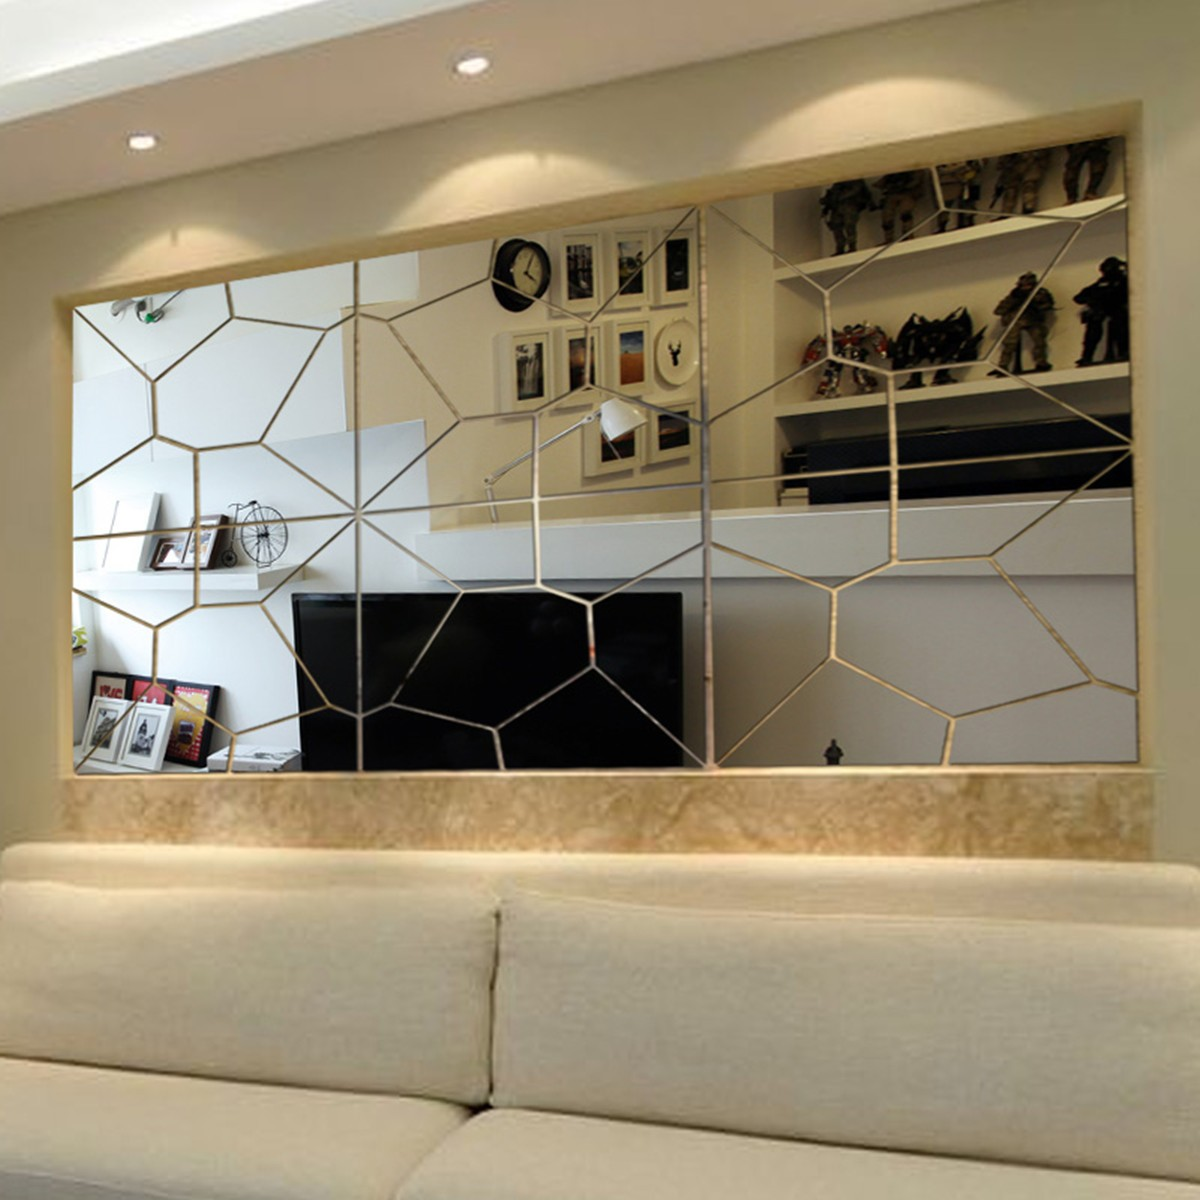 21PCS 3D Acrylic Removable Modern Mirror Decal Art Mural Wall Sticker Home Room Decor DIY